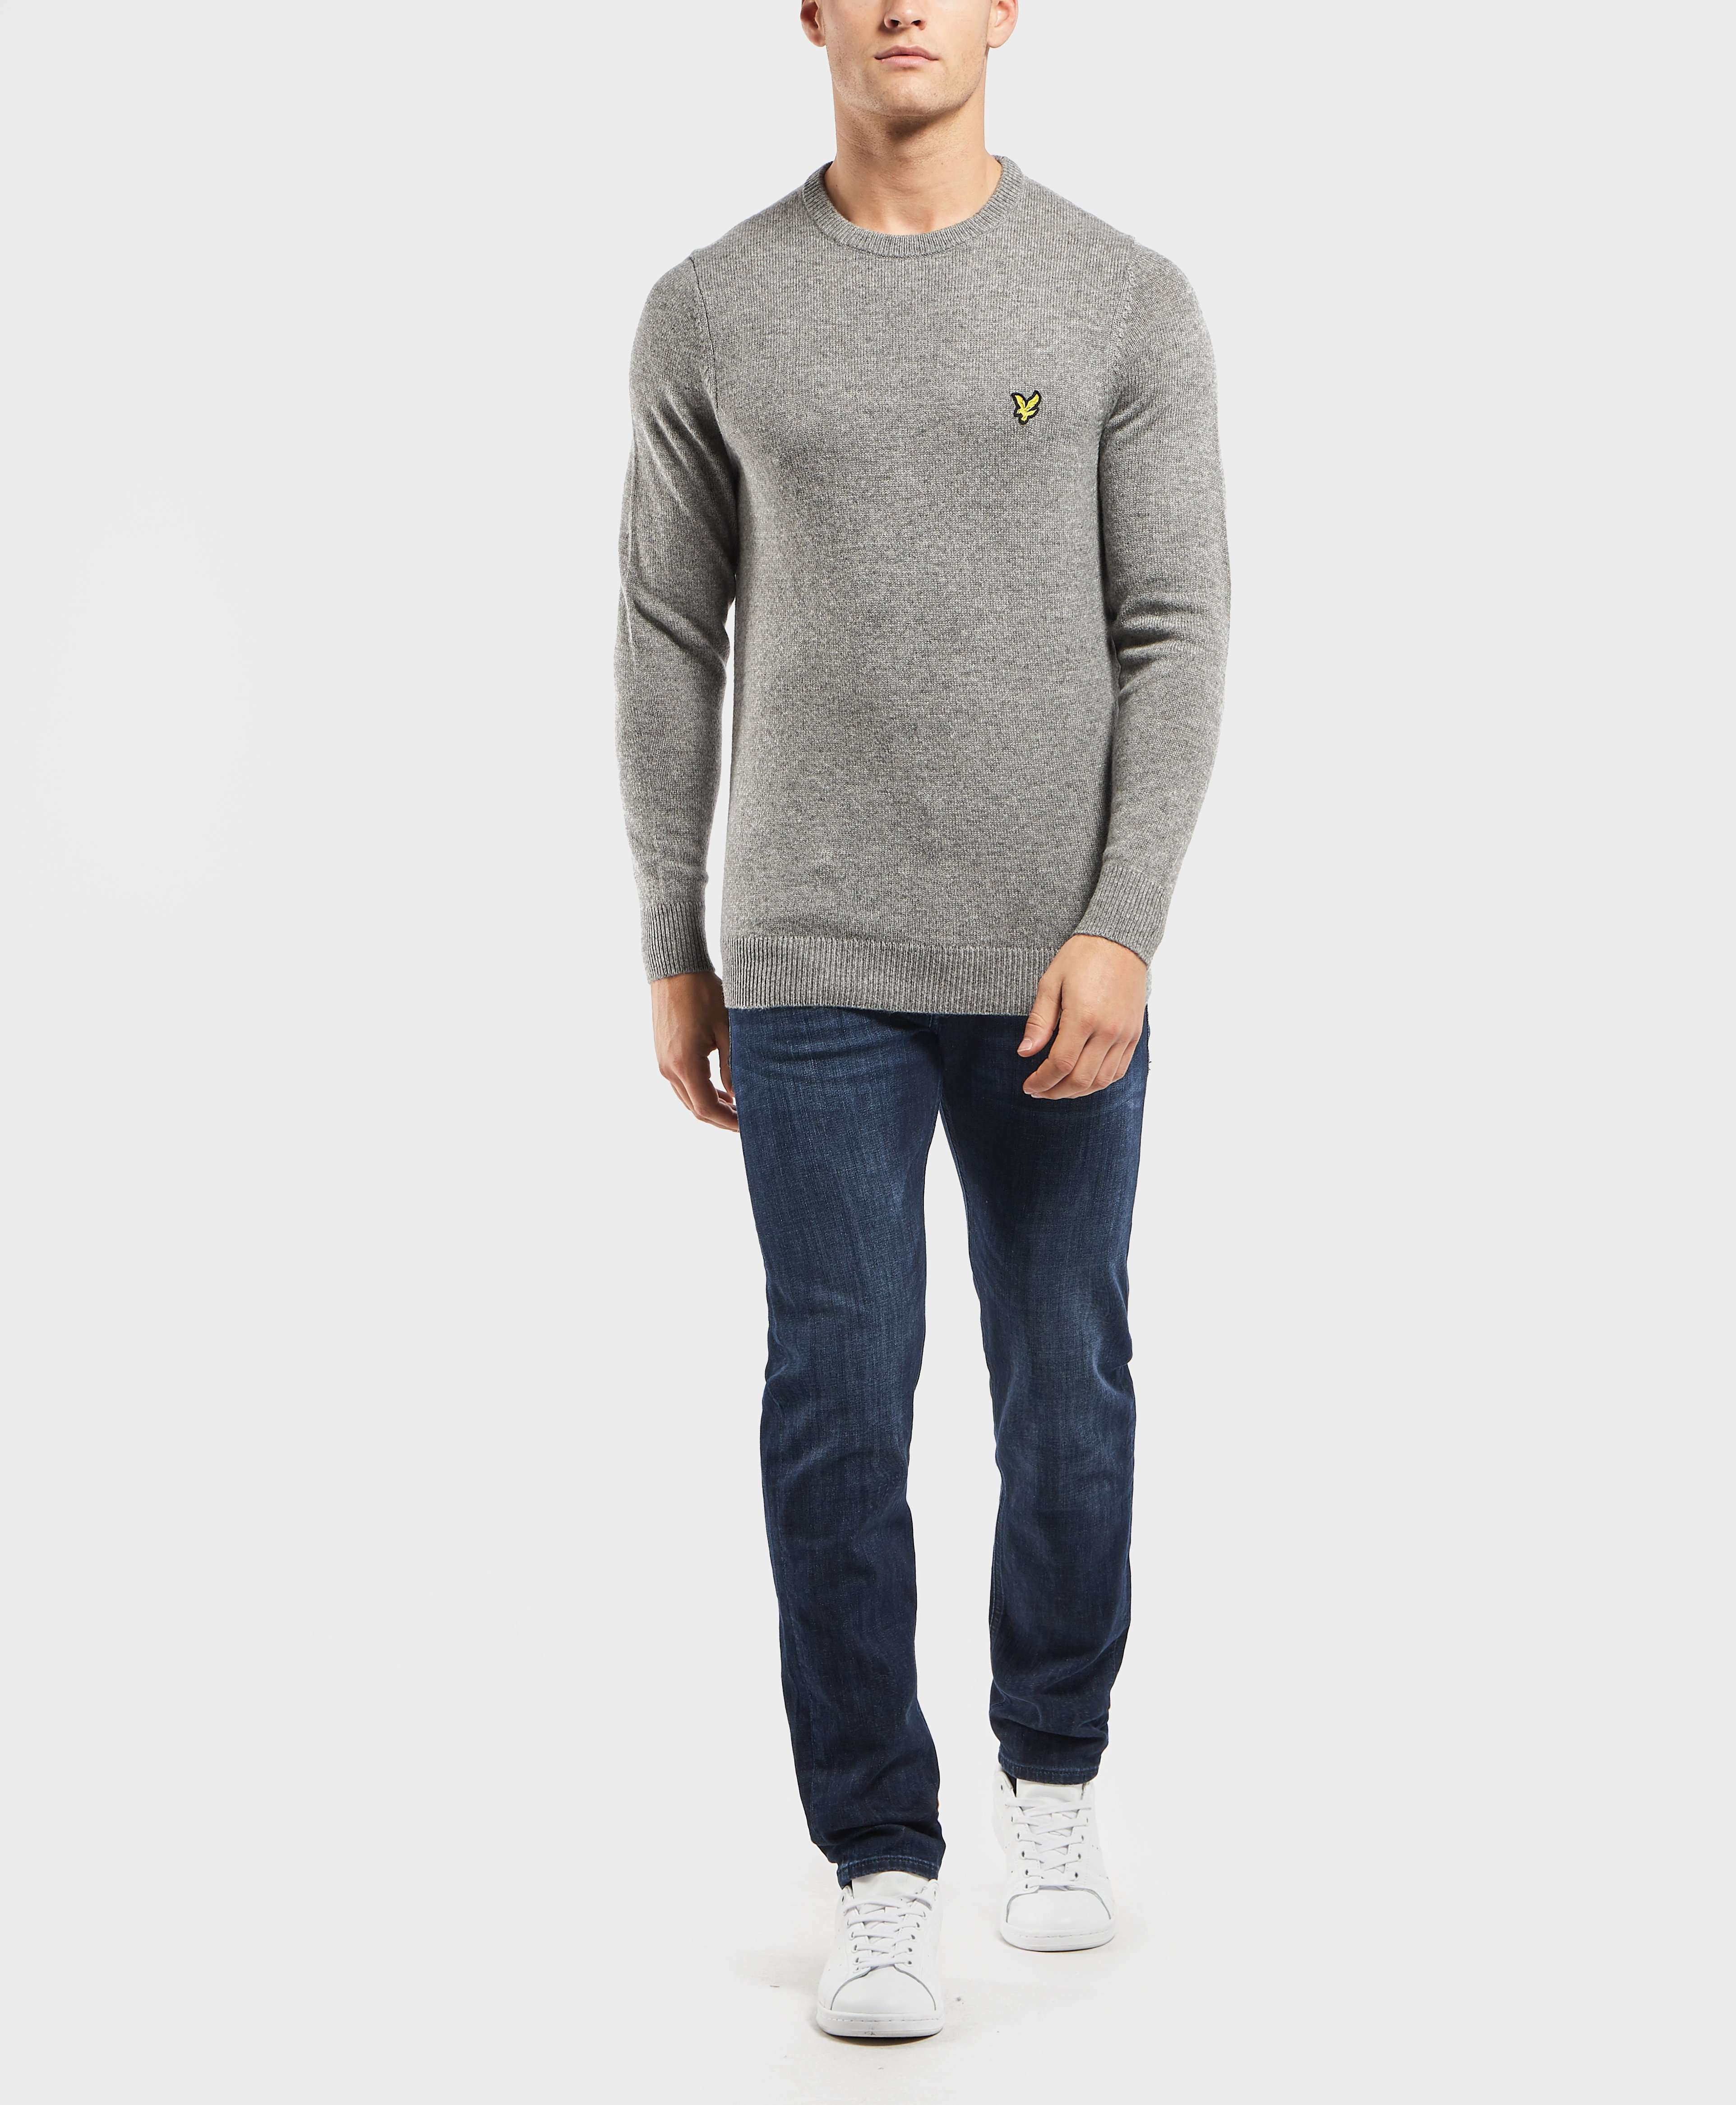 Lyle & Scott Lambswool Knitted Jumper